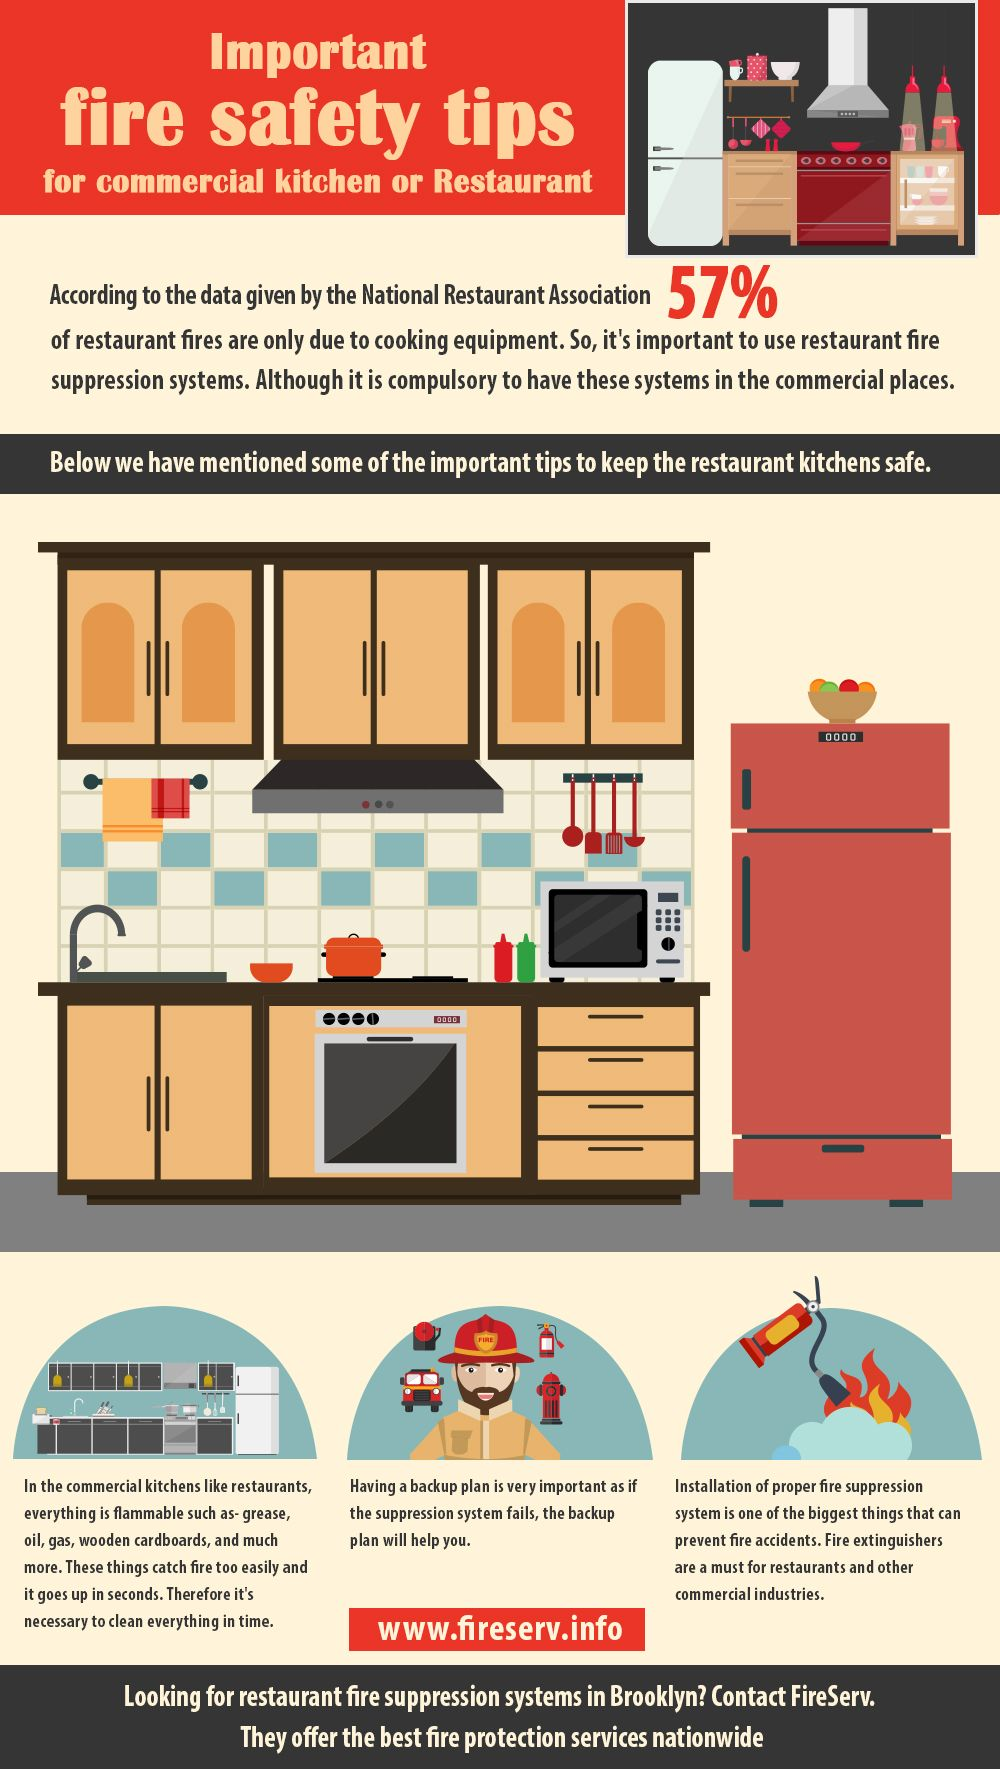 Important fire safety tips for commercial kitchen and